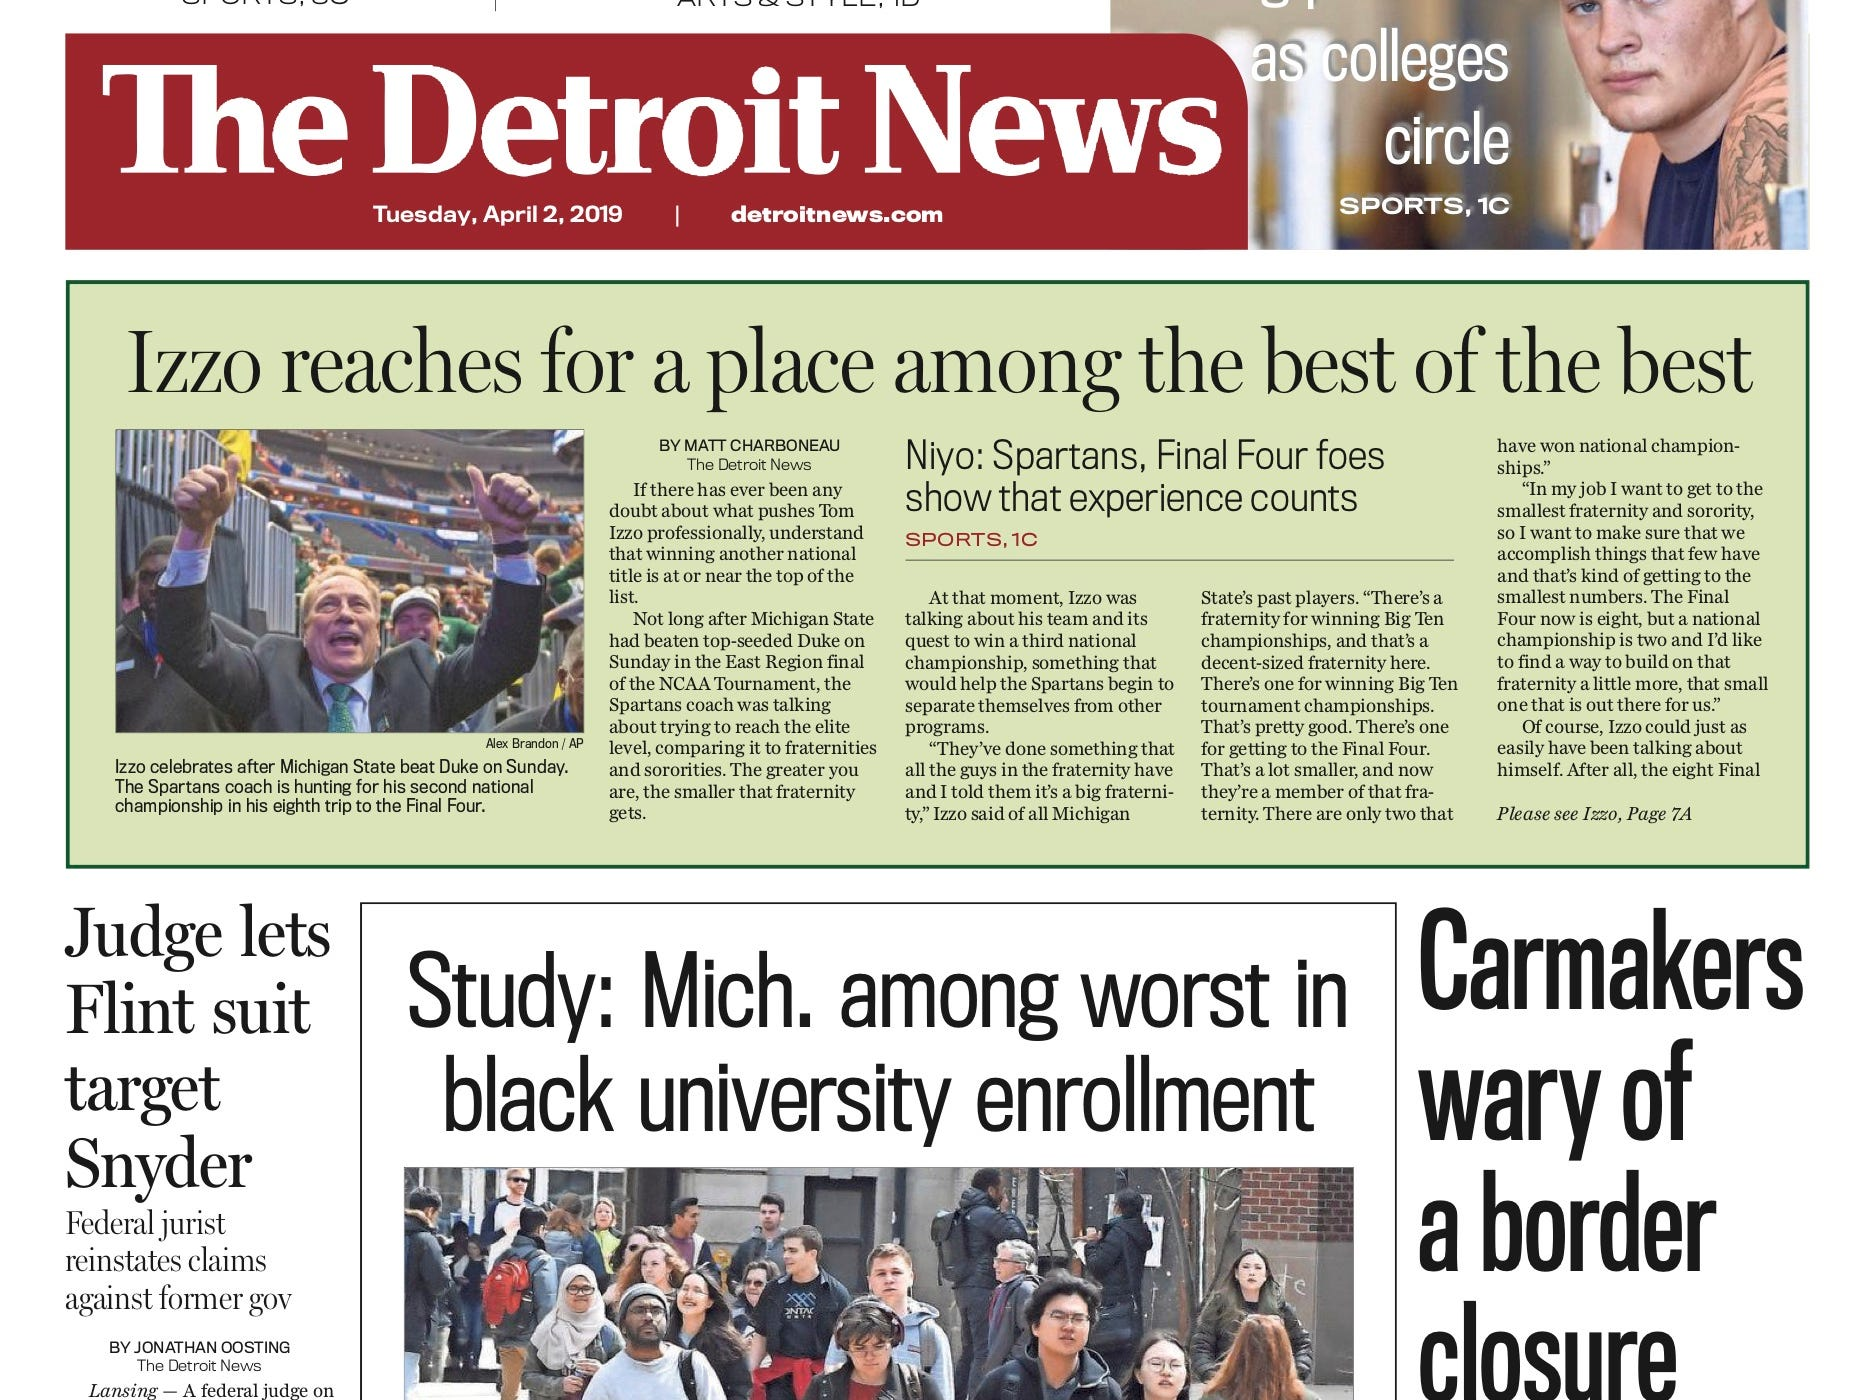 The front page of the Detroit News on April 2, 2019.